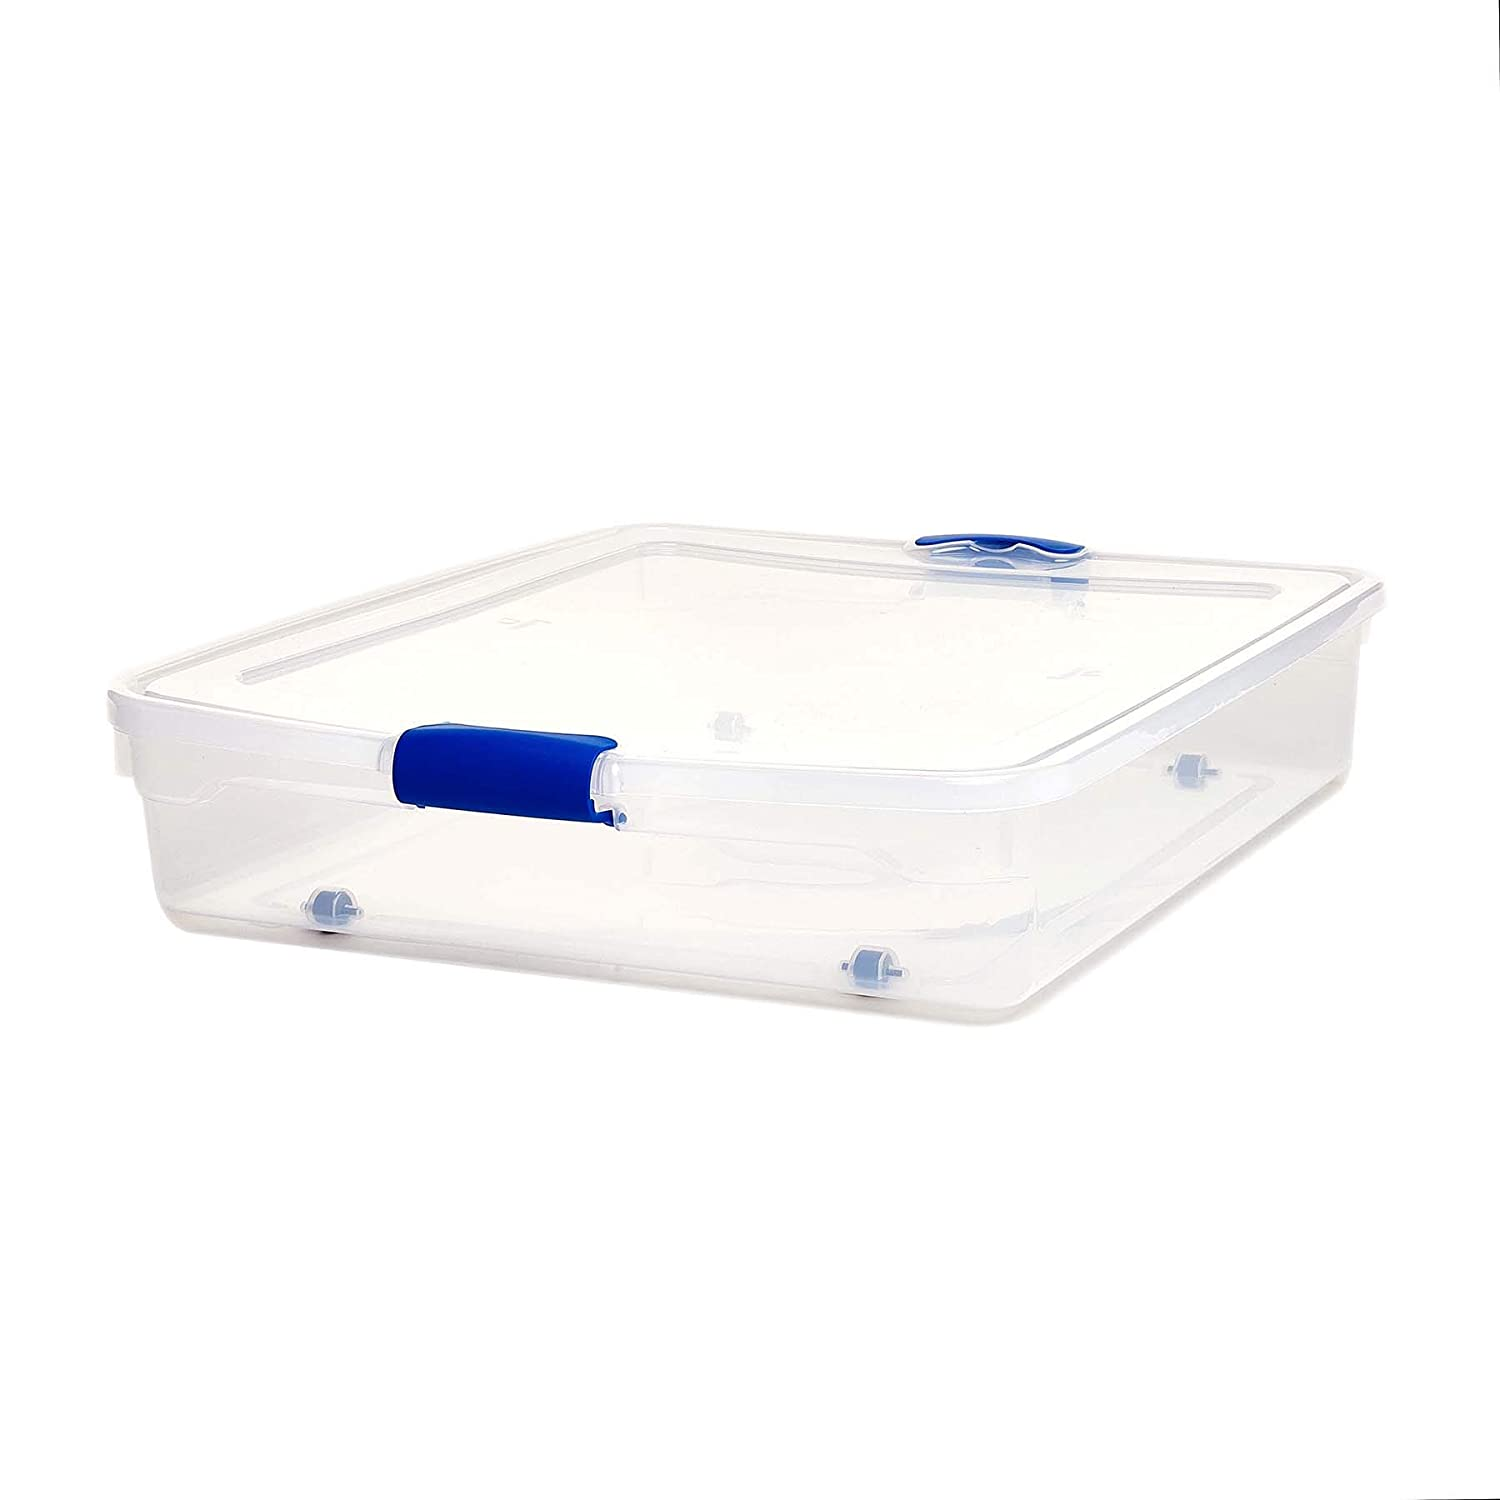 Homz Plastic Underbed Storage, Stackable Storage Bins with Blue Latching Handles, 56 Quart, Clear, 2-Pack